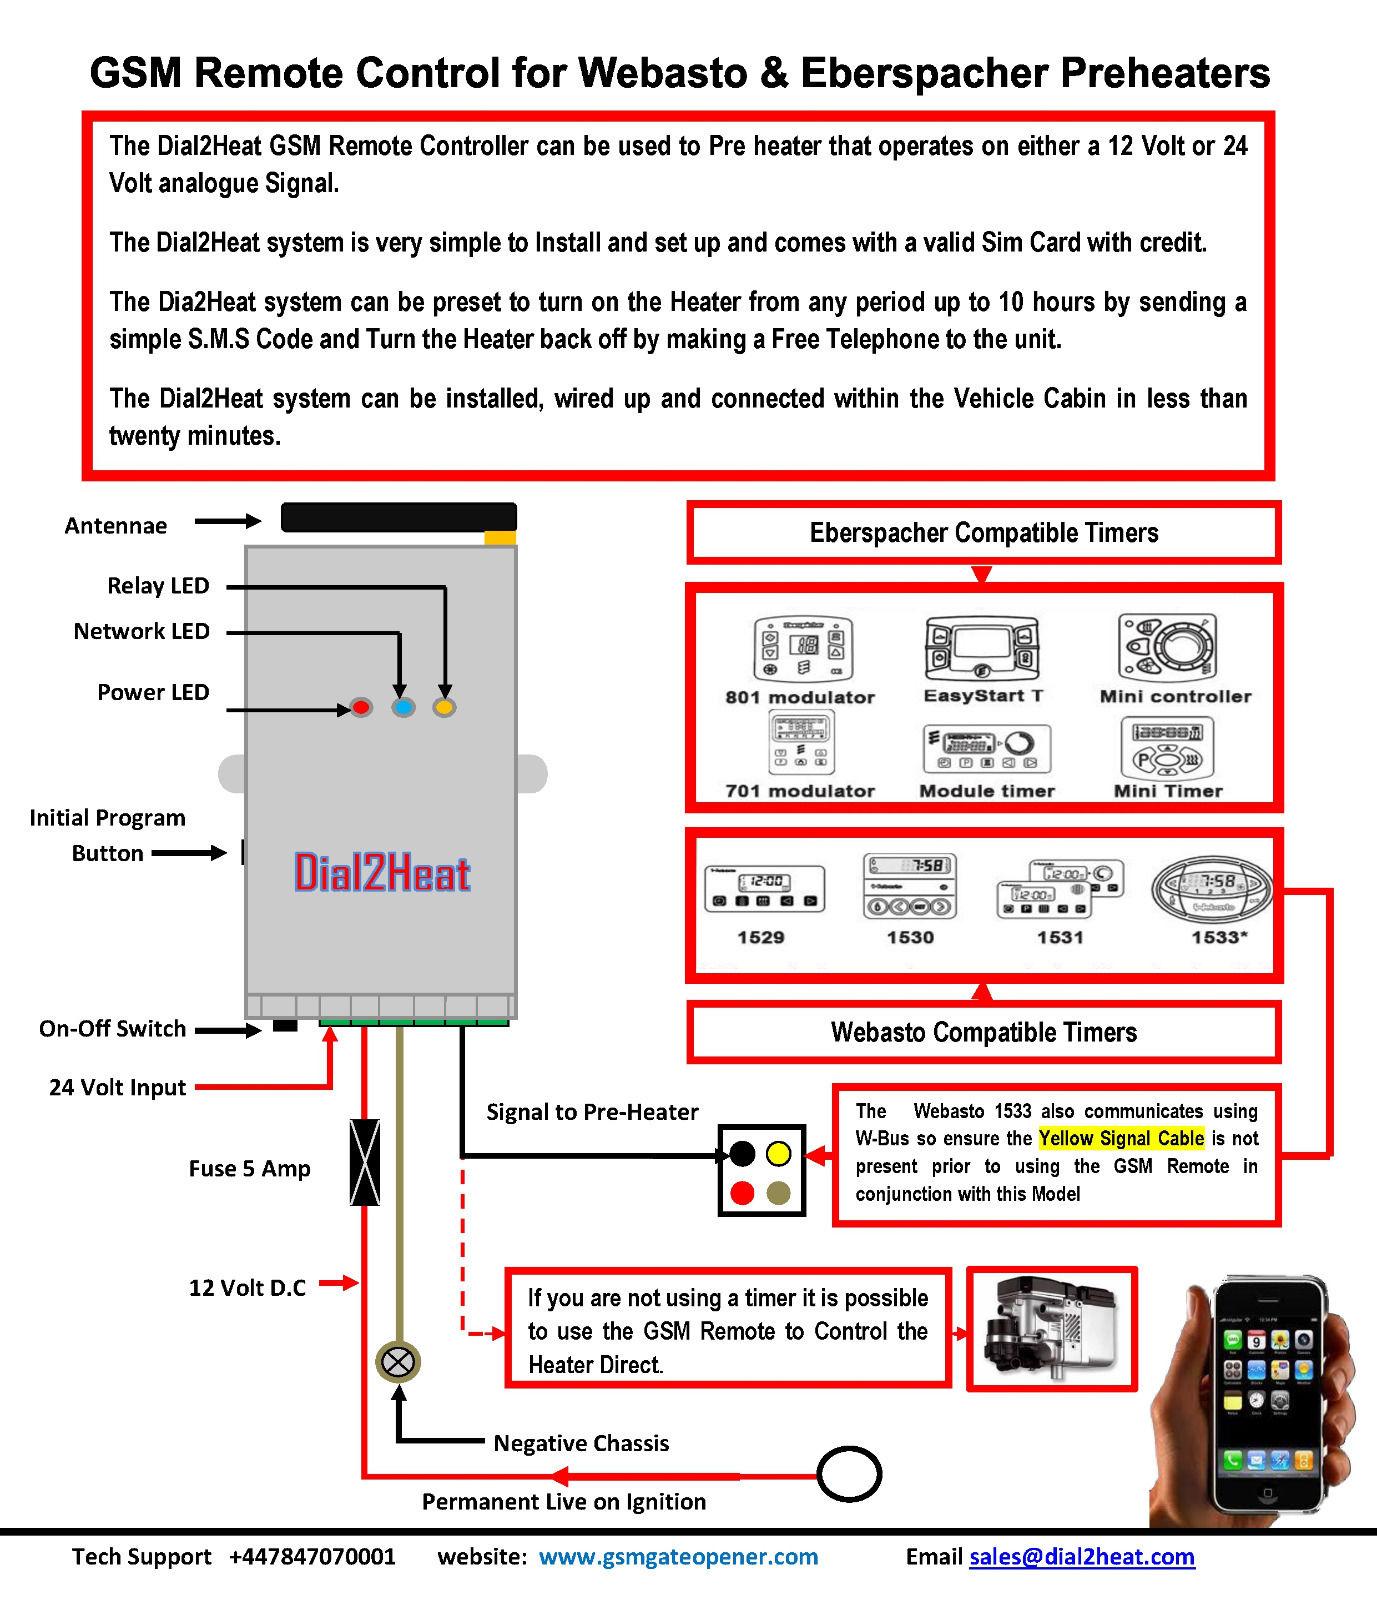 Diagram Parts Engine Kubota 1462di Wiring Library Of Digital Eberspacher Remote Control Equipment Canal World Timer Switch